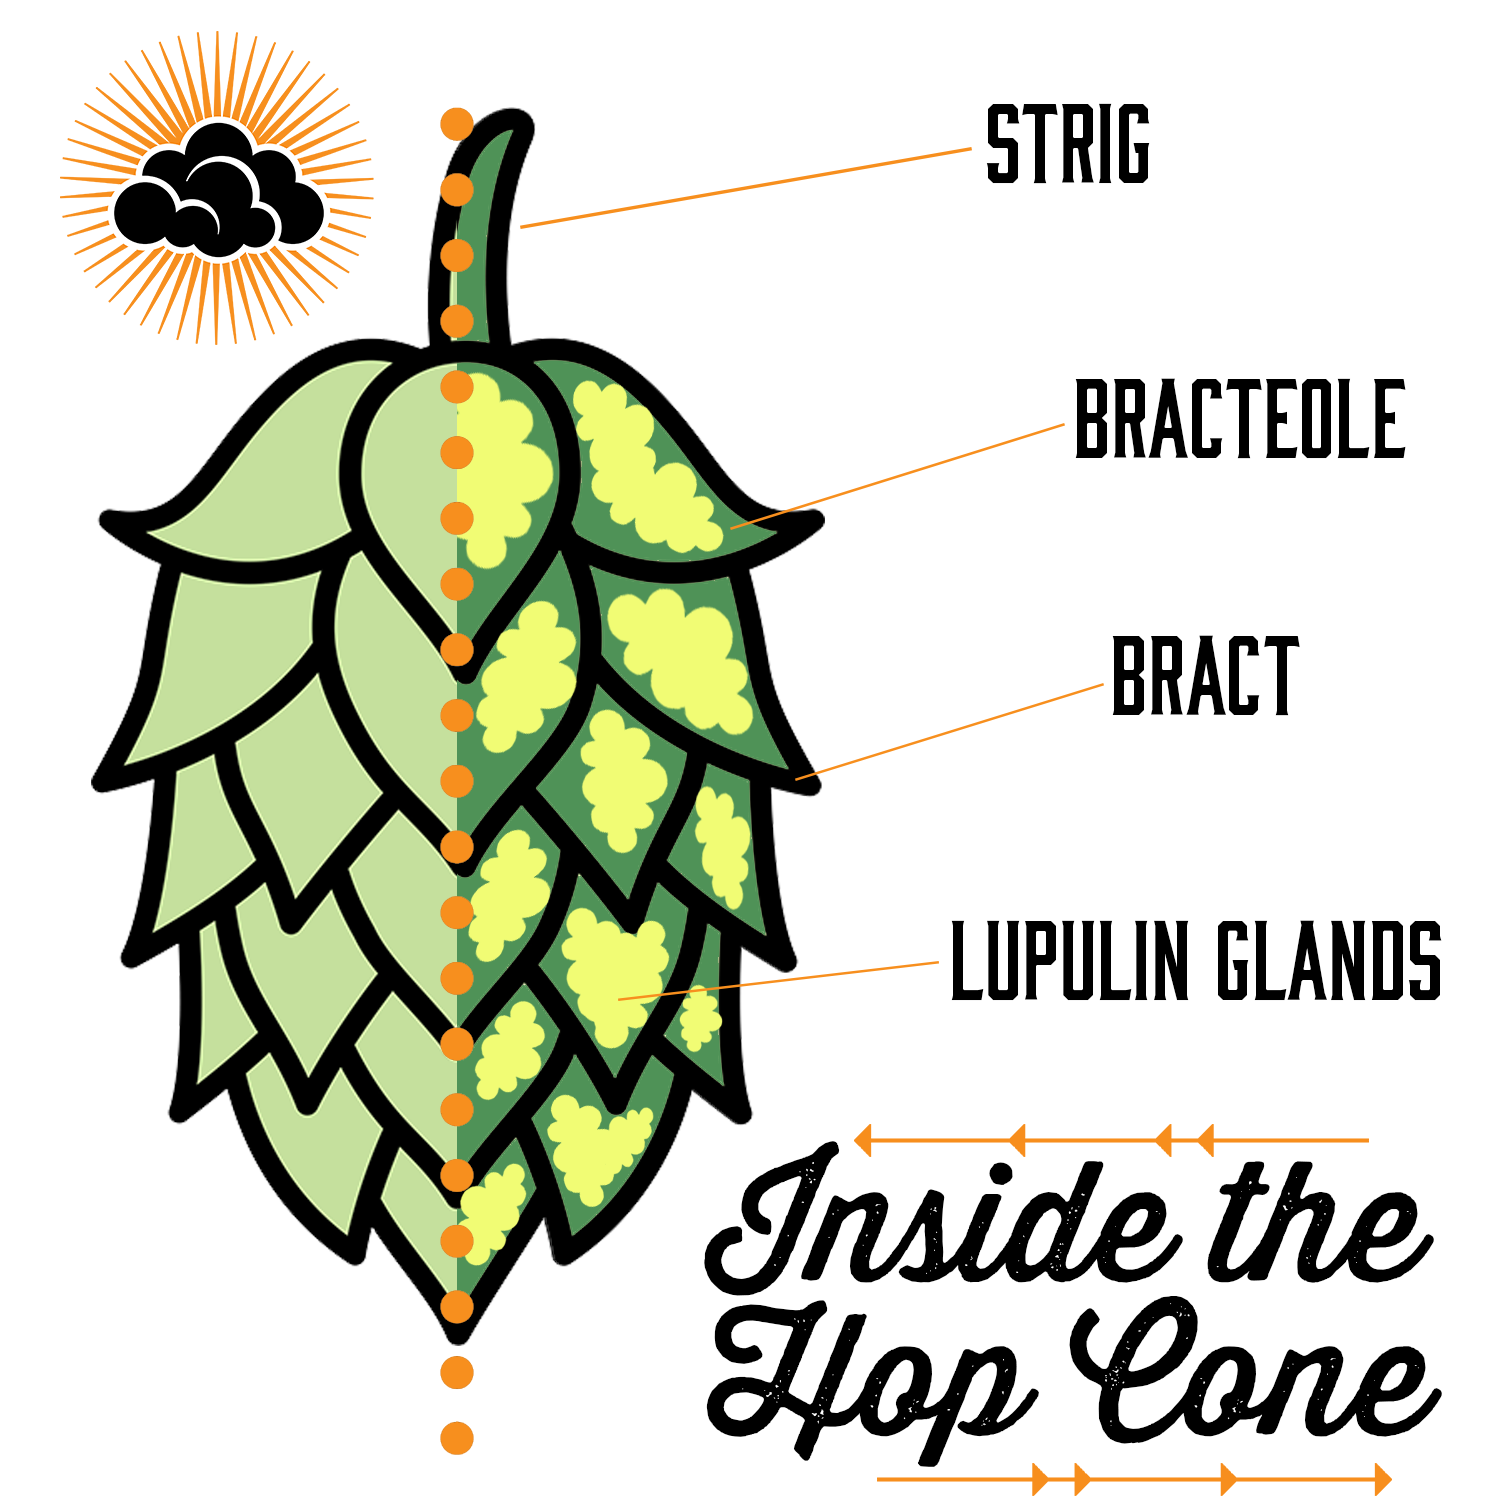 A diagram showing the inside anatomy of a hop cone, labeling the different parts - string, bracteole, bract, and lupulin glands.